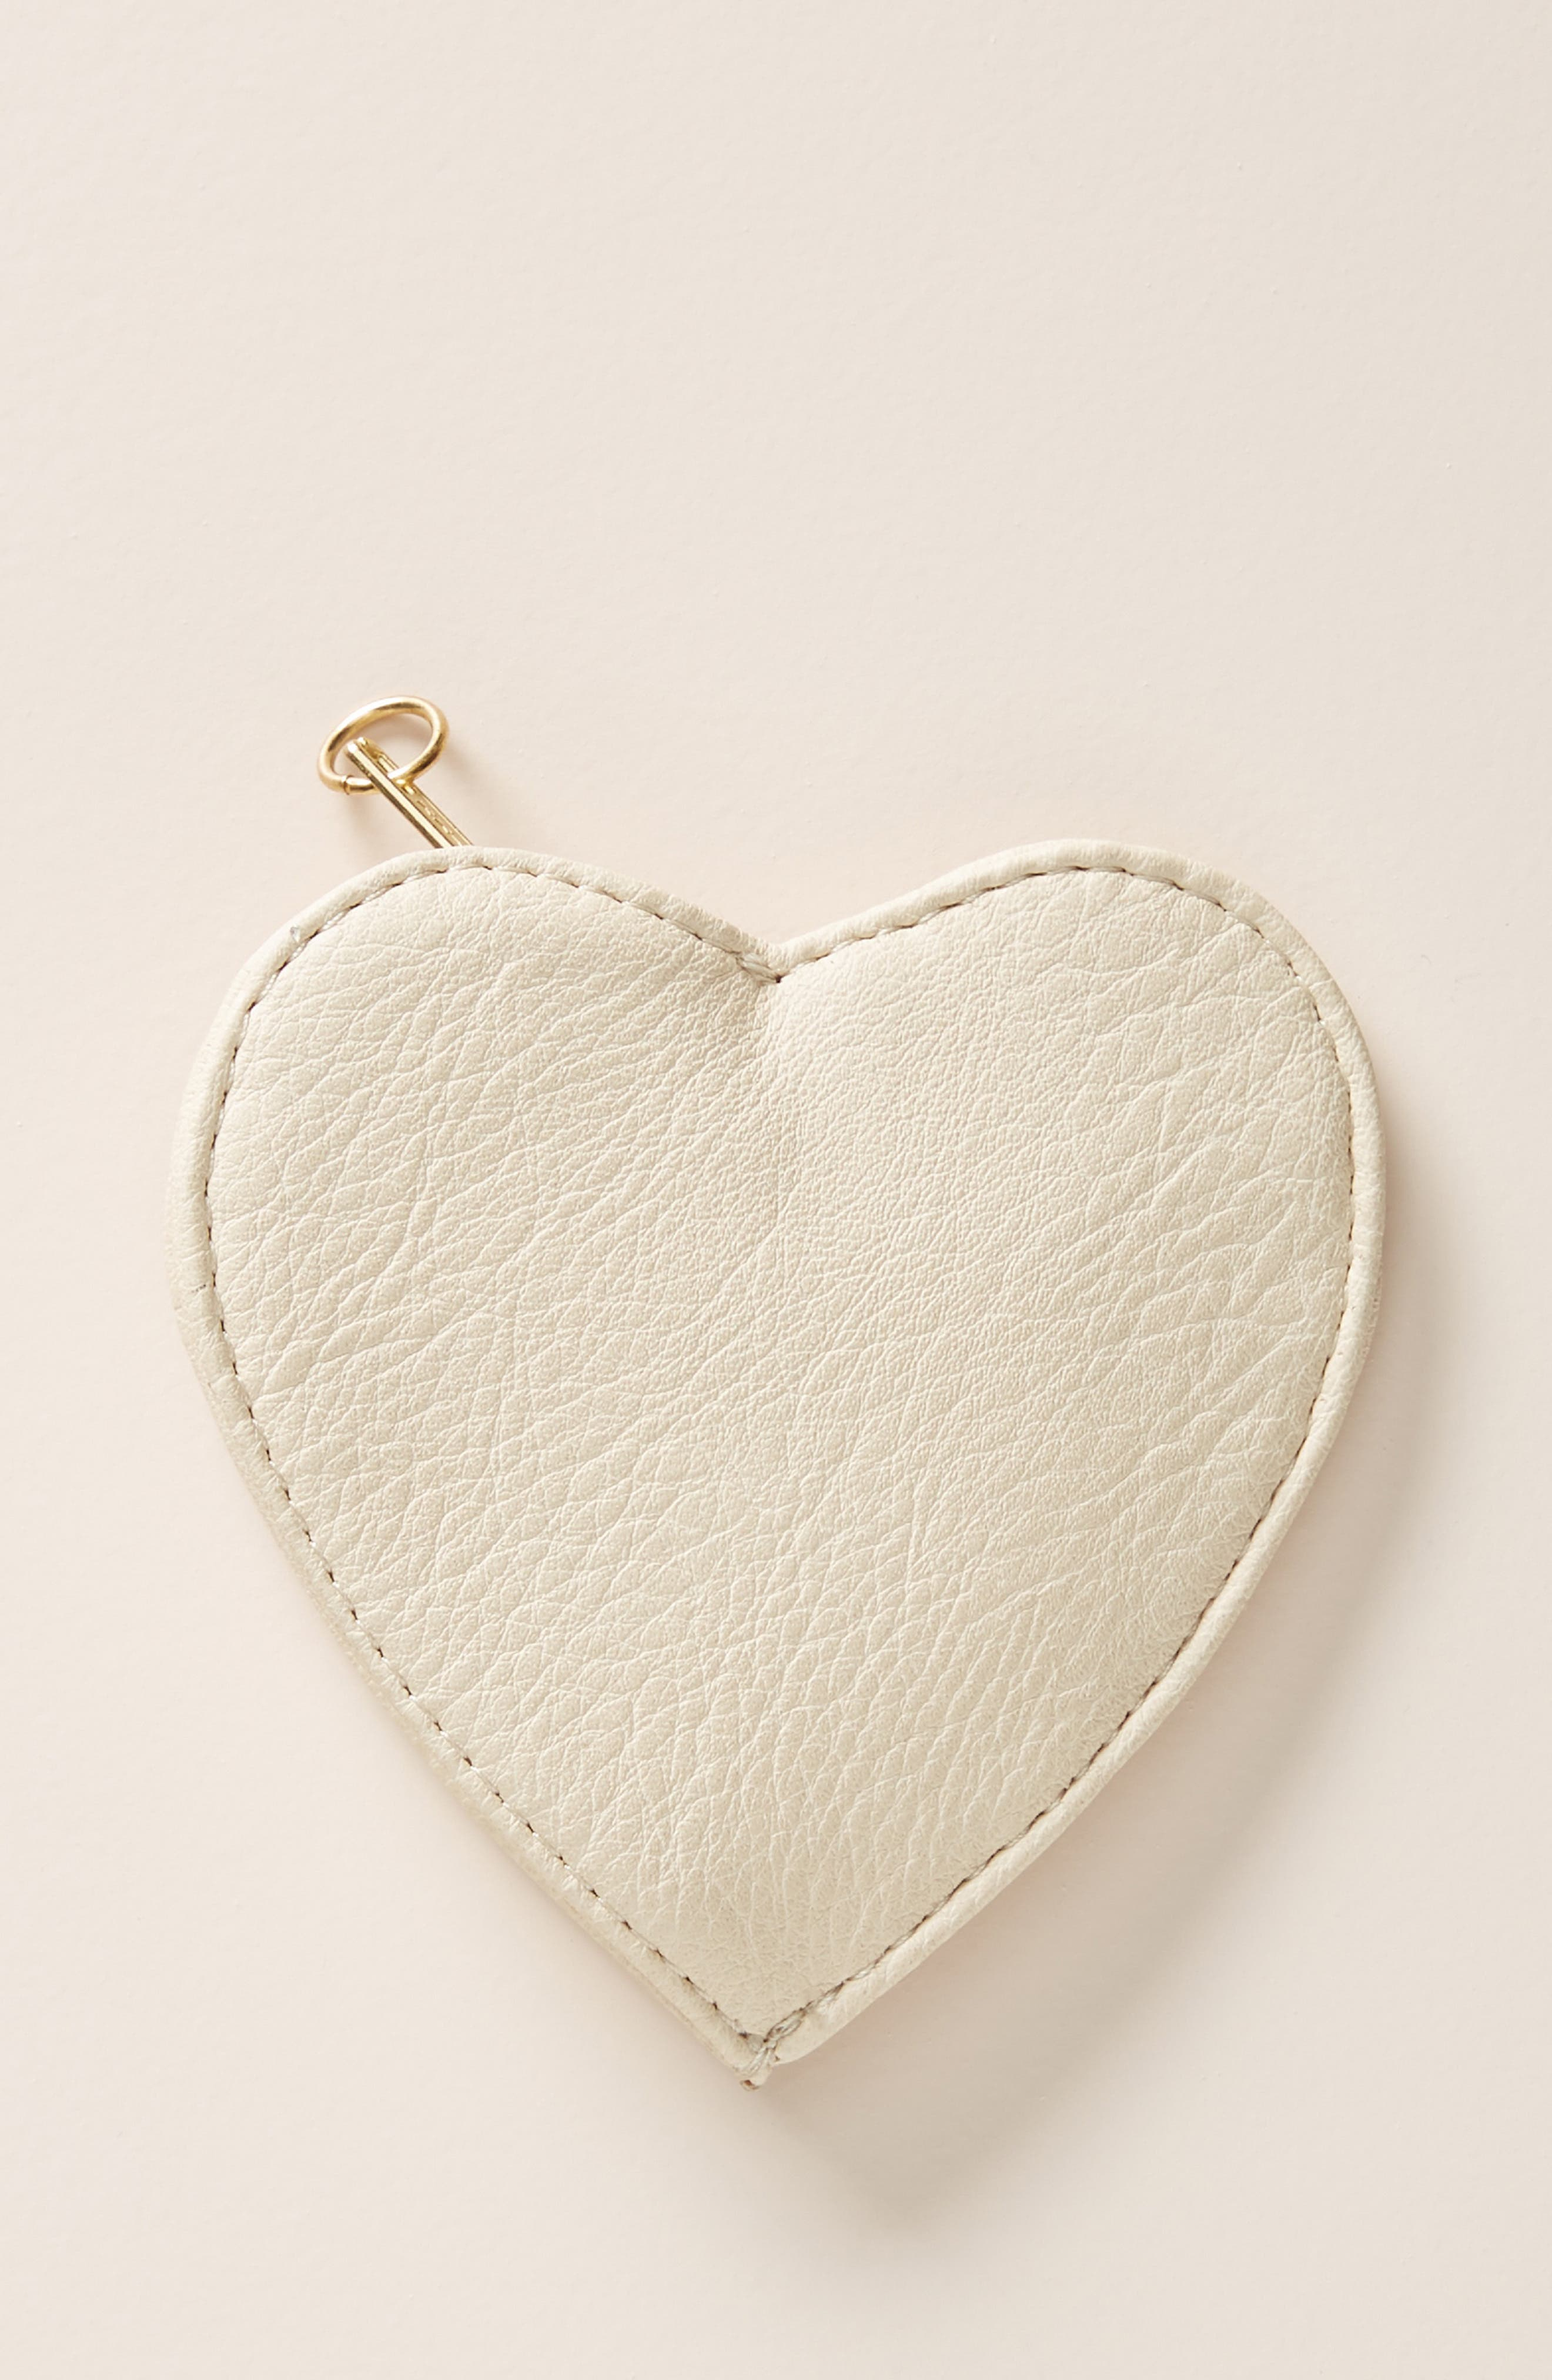 Embellished Heart Pouch,                             Alternate thumbnail 2, color,                             901